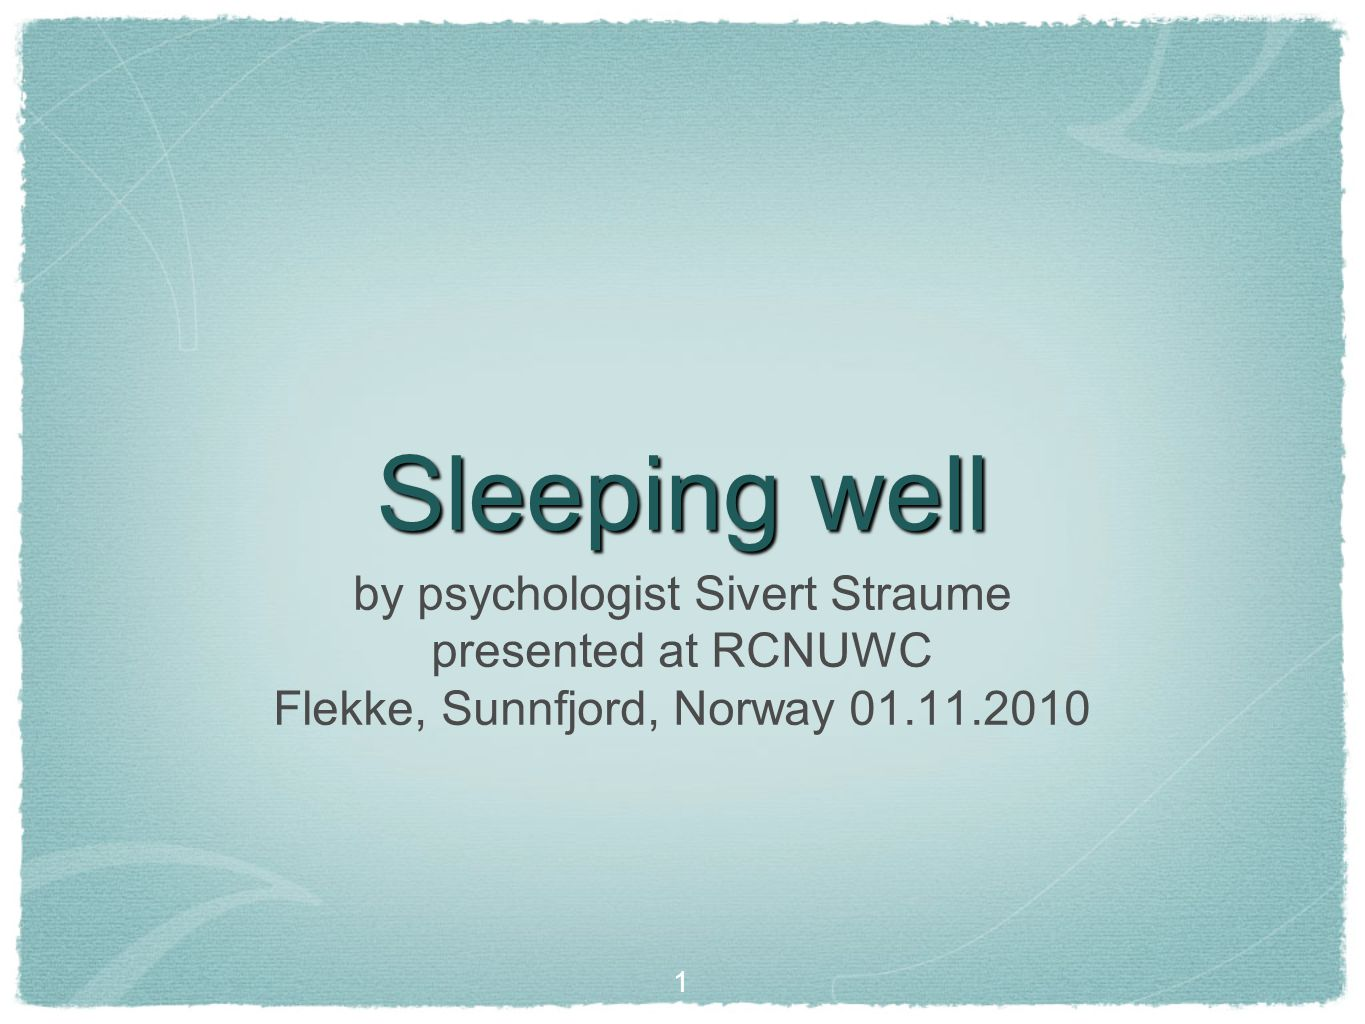 Sleeping well 1 by psychologist Sivert Straume presented at RCNUWC Flekke, Sunnfjord, Norway 01.11.2010